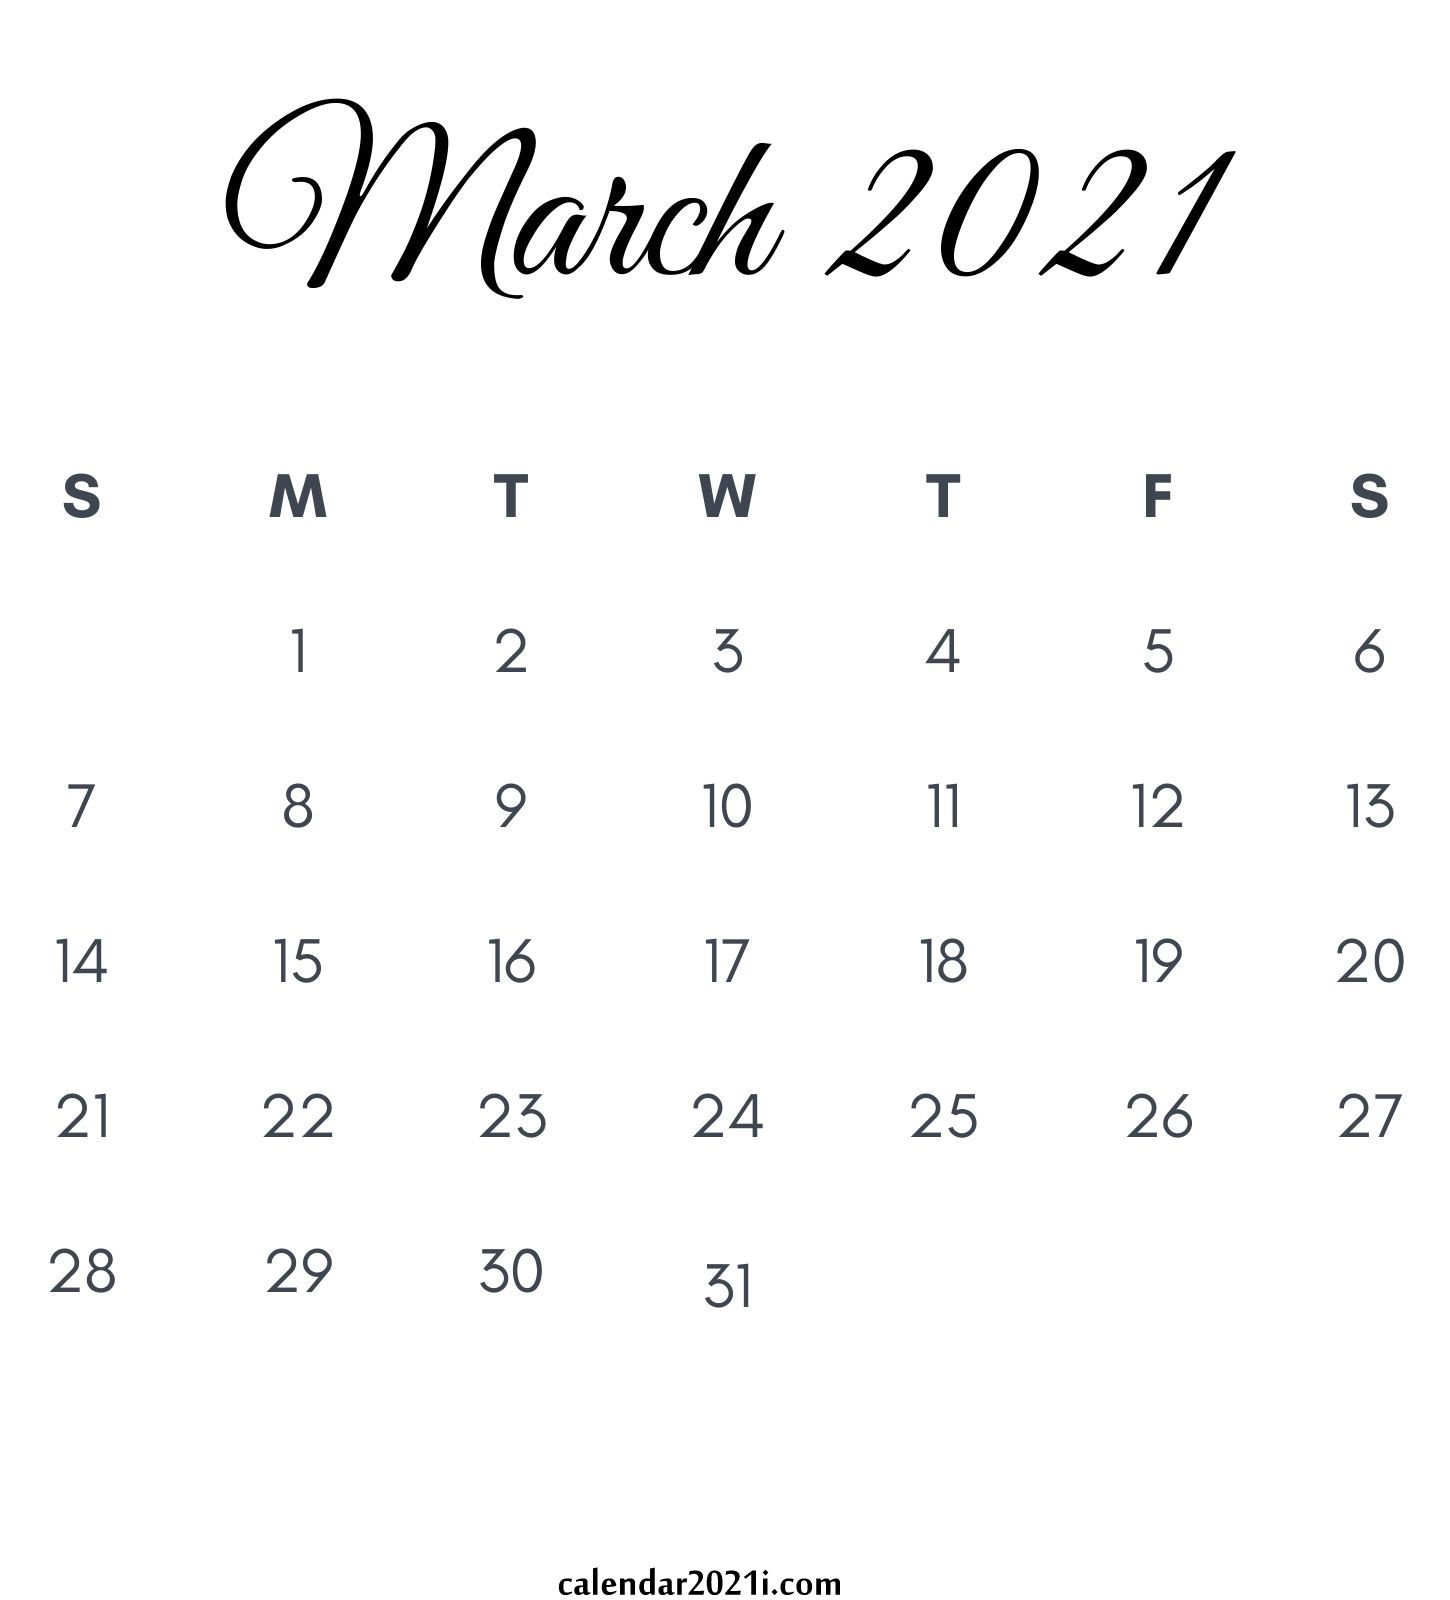 March 2021 Calendar Printable Floral Holidays Wallpaper 1450x1600